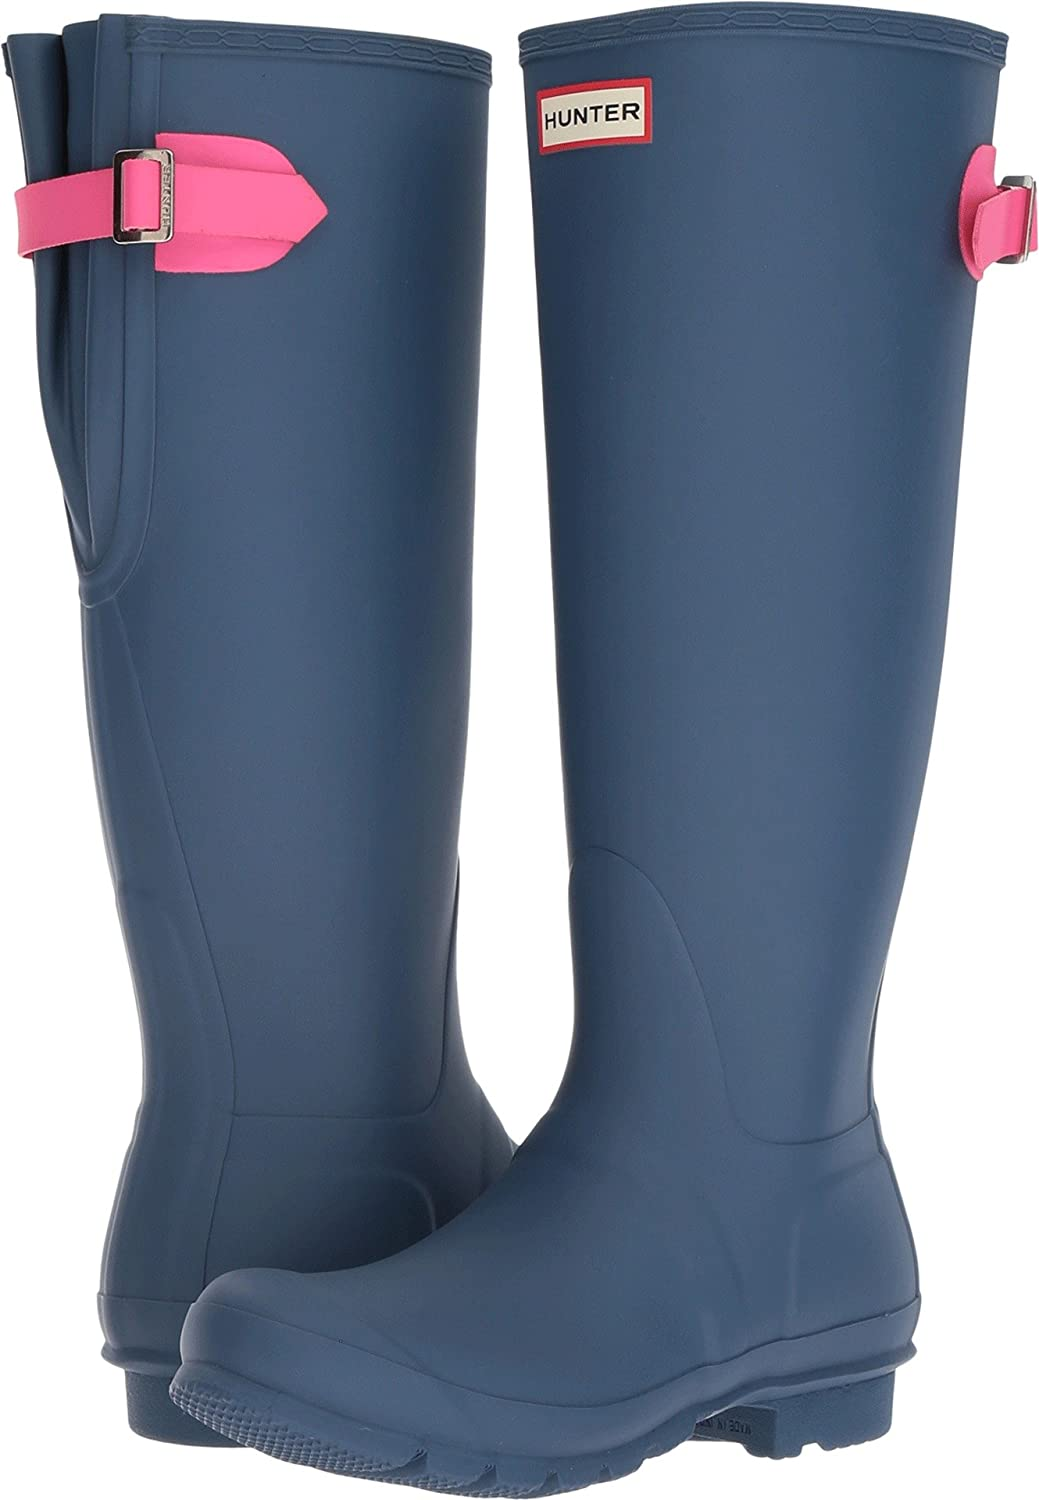 Hunter Womens Original Back Adjustable Rain Boots B06ZZ4WNZF 10 B(M) US|Dark Earth Blue/Ion Pink